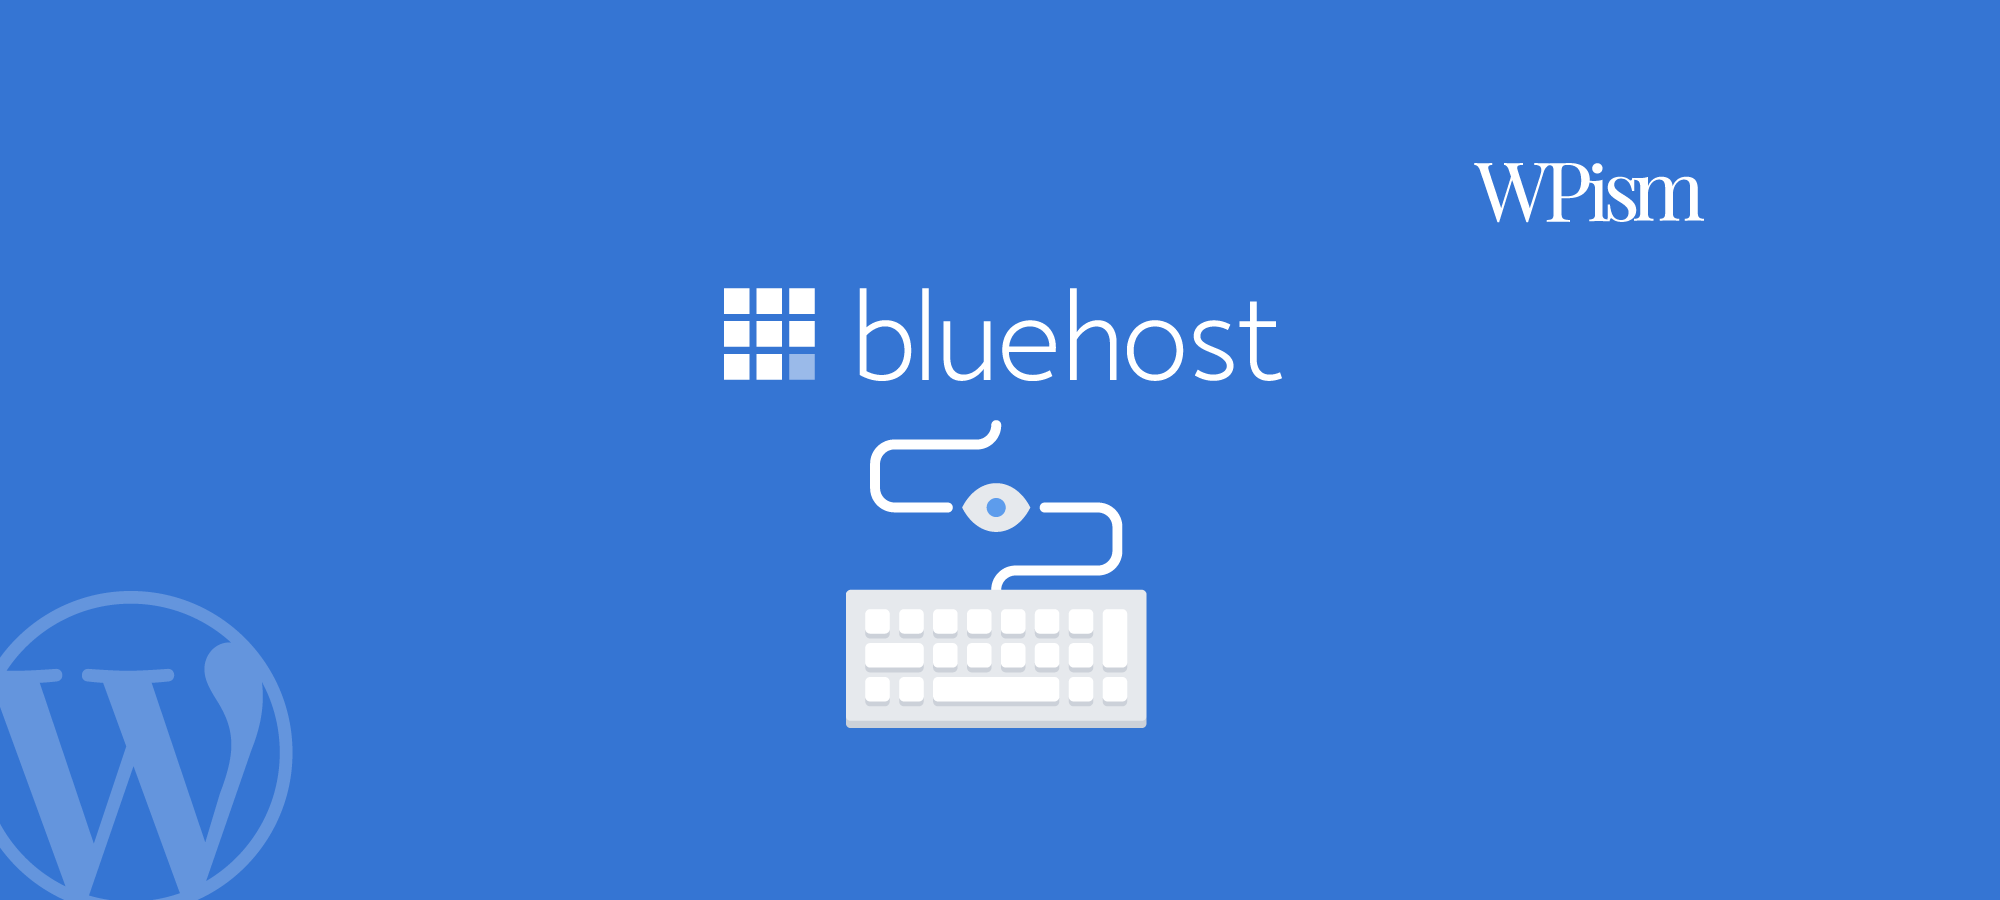 Bluehost Free Domain Name – Search And Claim Now!